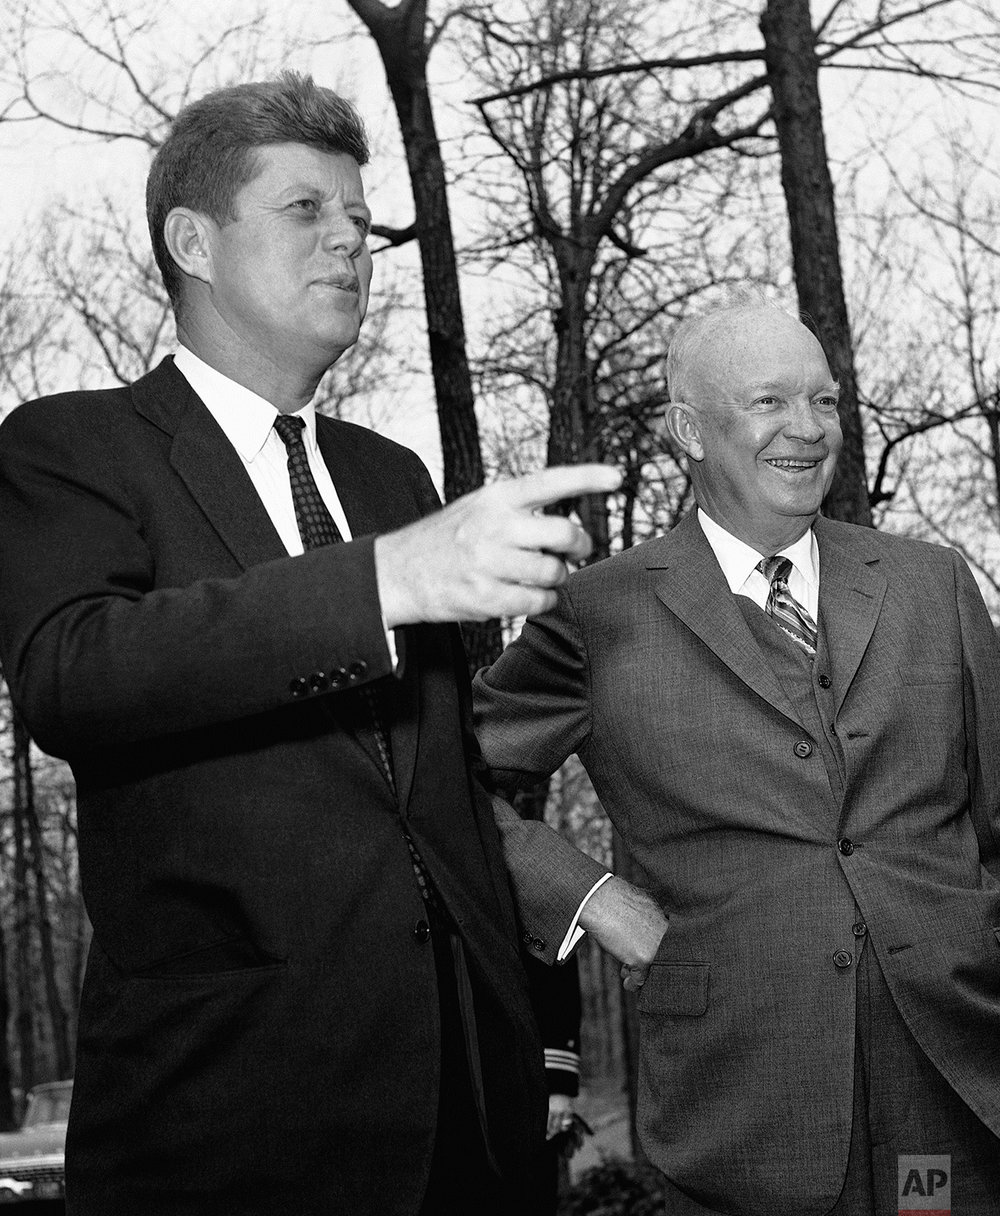 President John Kennedy points as former President Dwight Eisenhower looks out over Camp David after the two conferred on April 22, 1961 at the presidential hideaway at Thurmont, Maryland on the Cuban situation. (AP Photo)